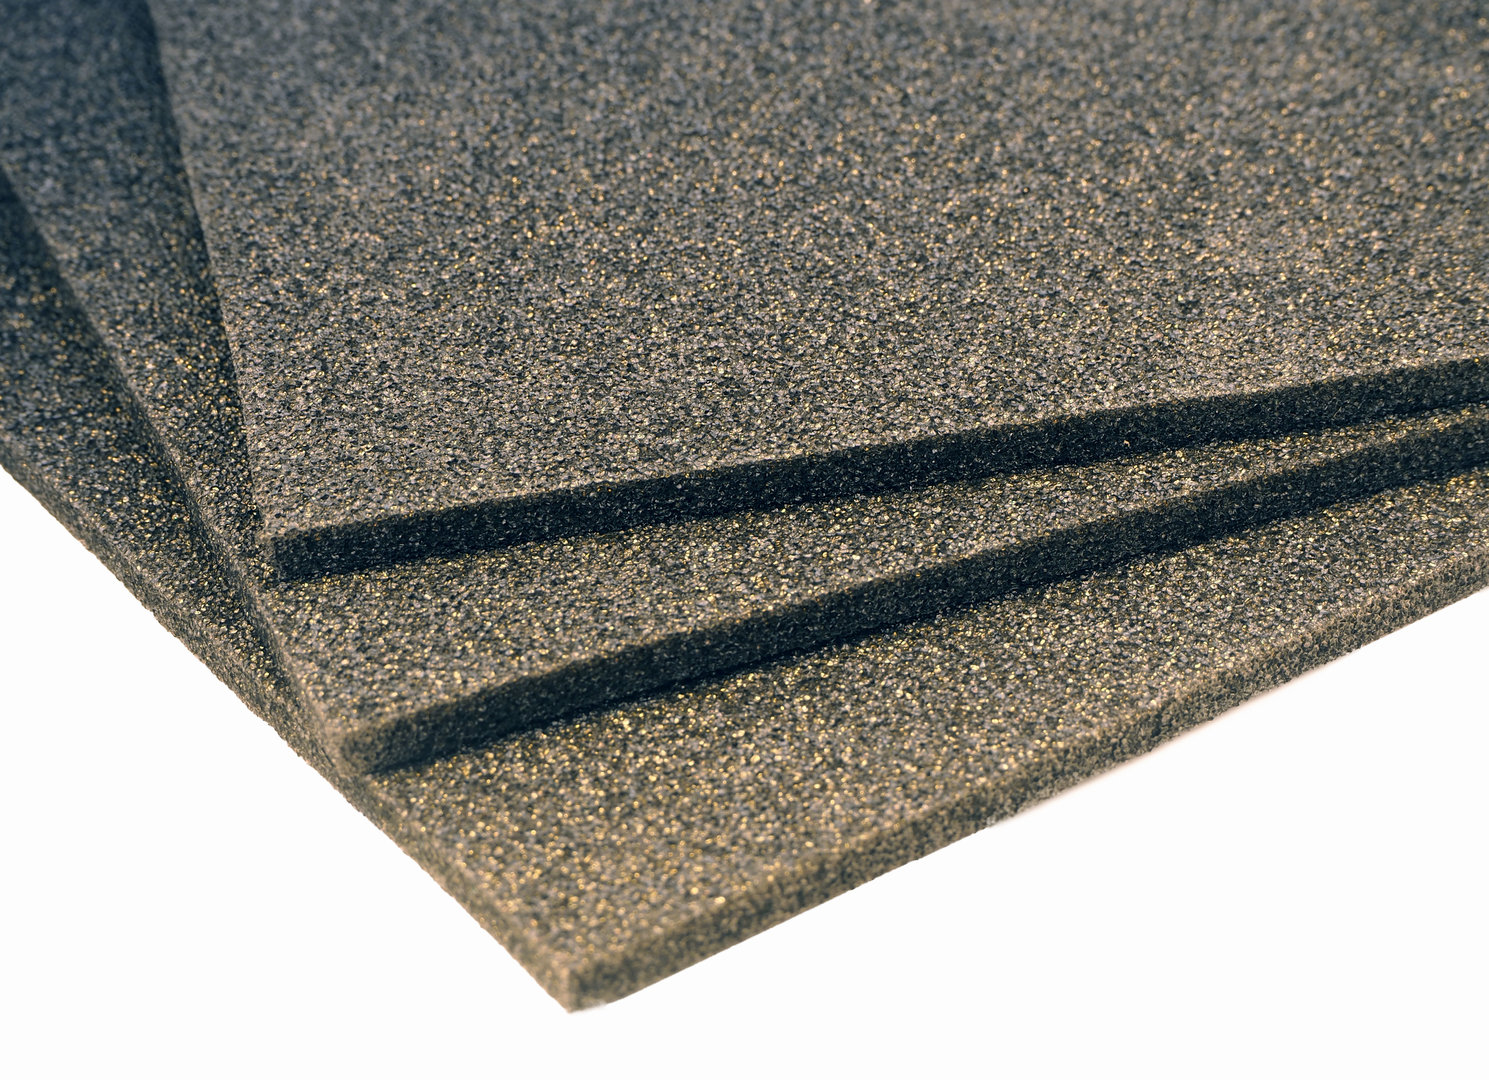 LD15FM Plastazote® 15Kg/m3  Flame Retardant Closed Cell Vinyl Polyethylene Foam Sheets & Rolls